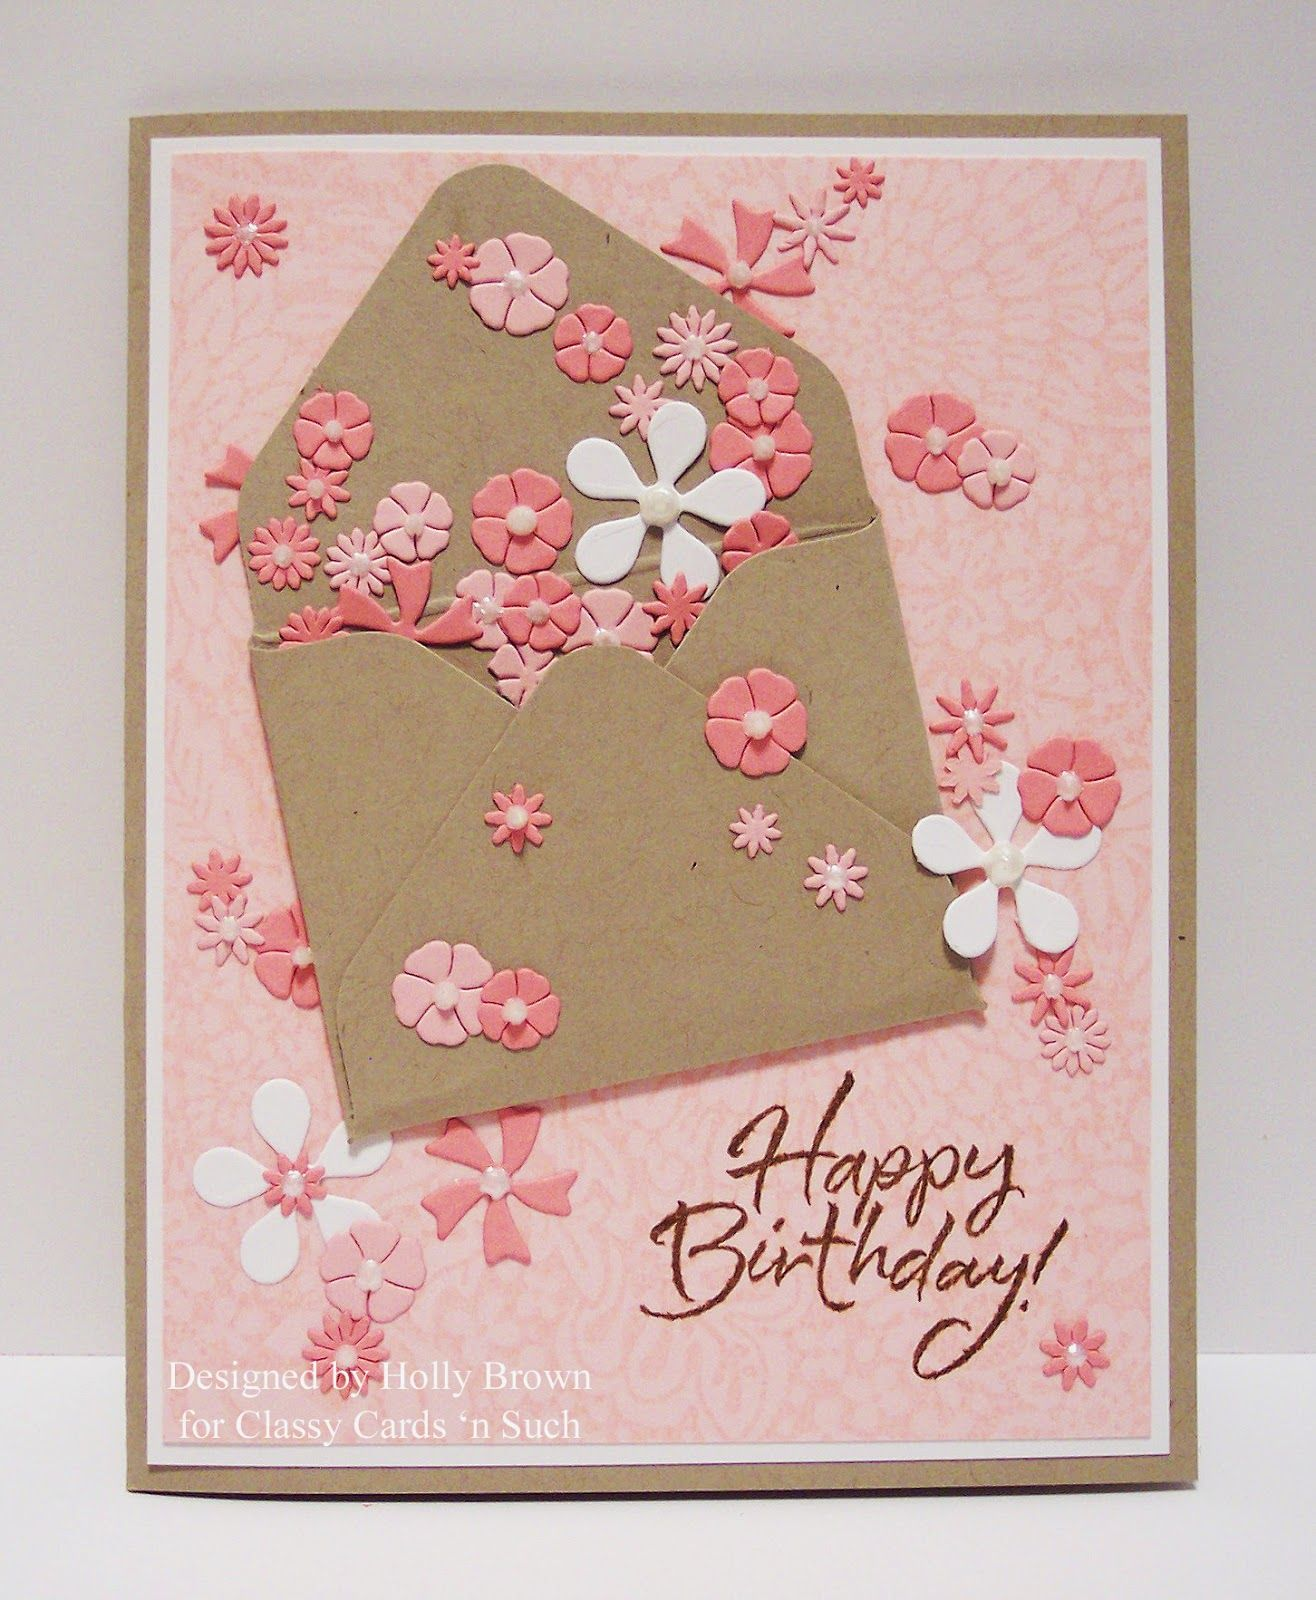 A blog about making classy handmade cards linked to the